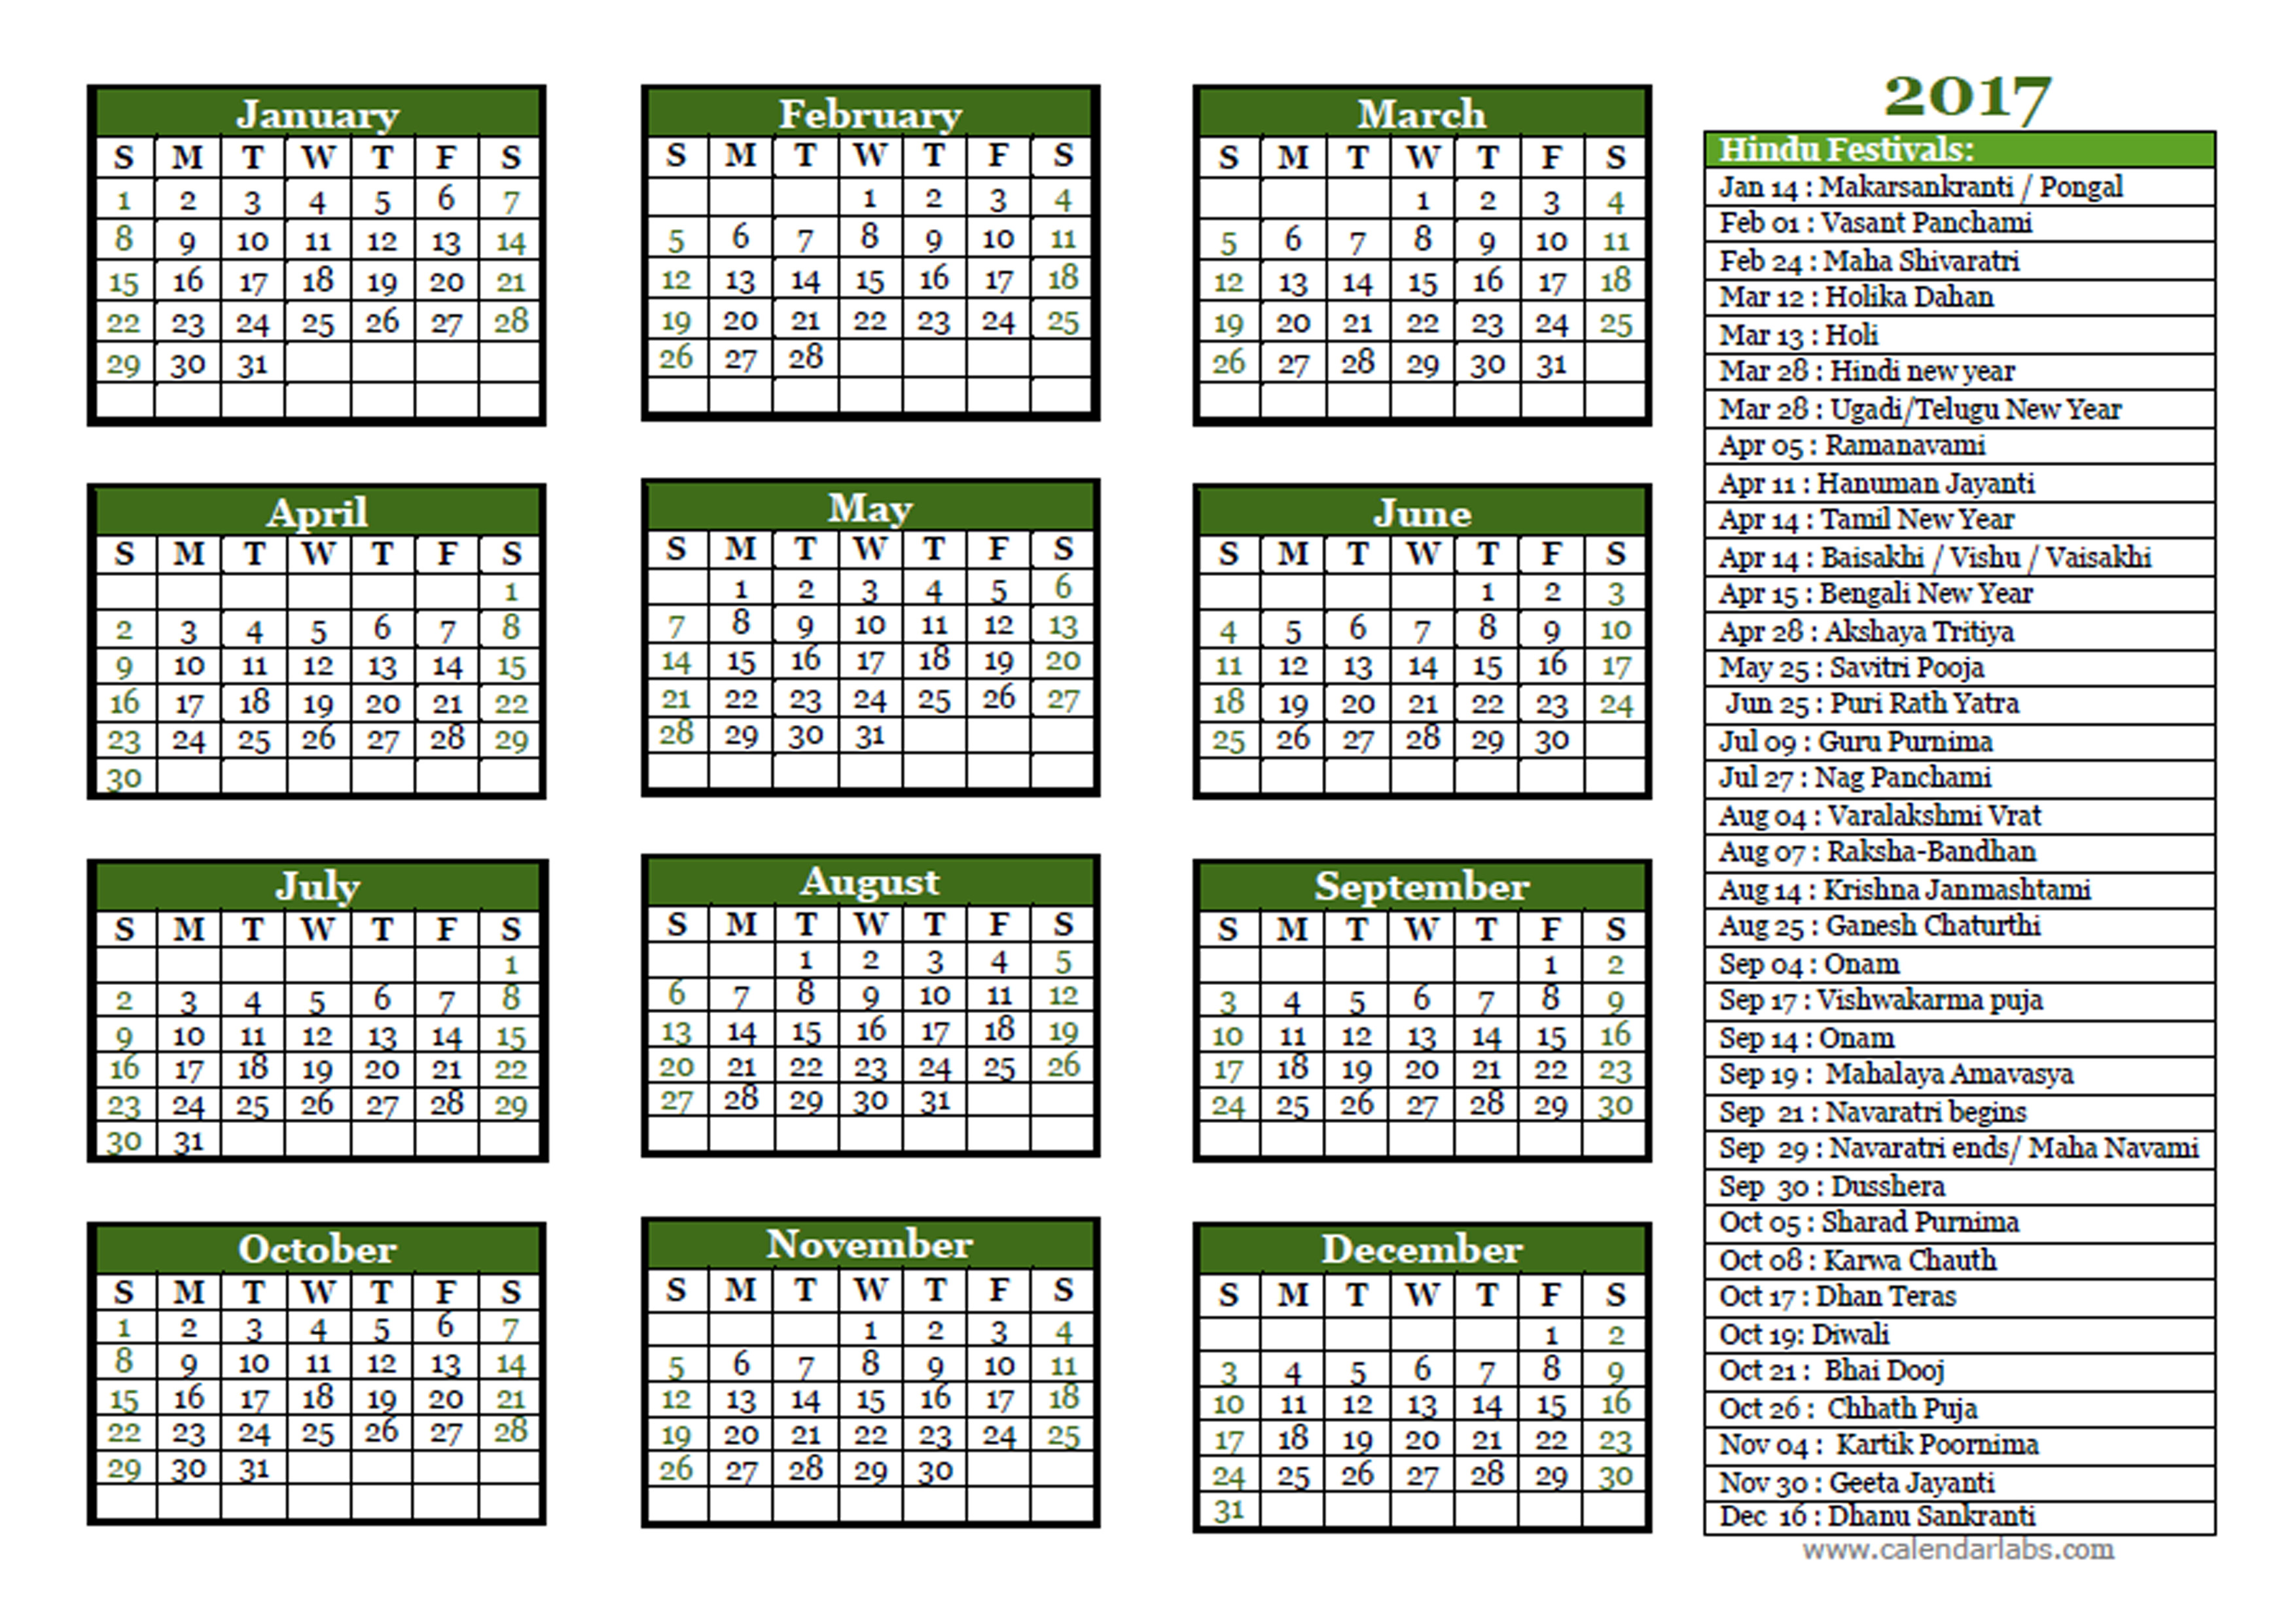 SSC Revised Calendar 2017: Released at ssc.nic.in SSC …